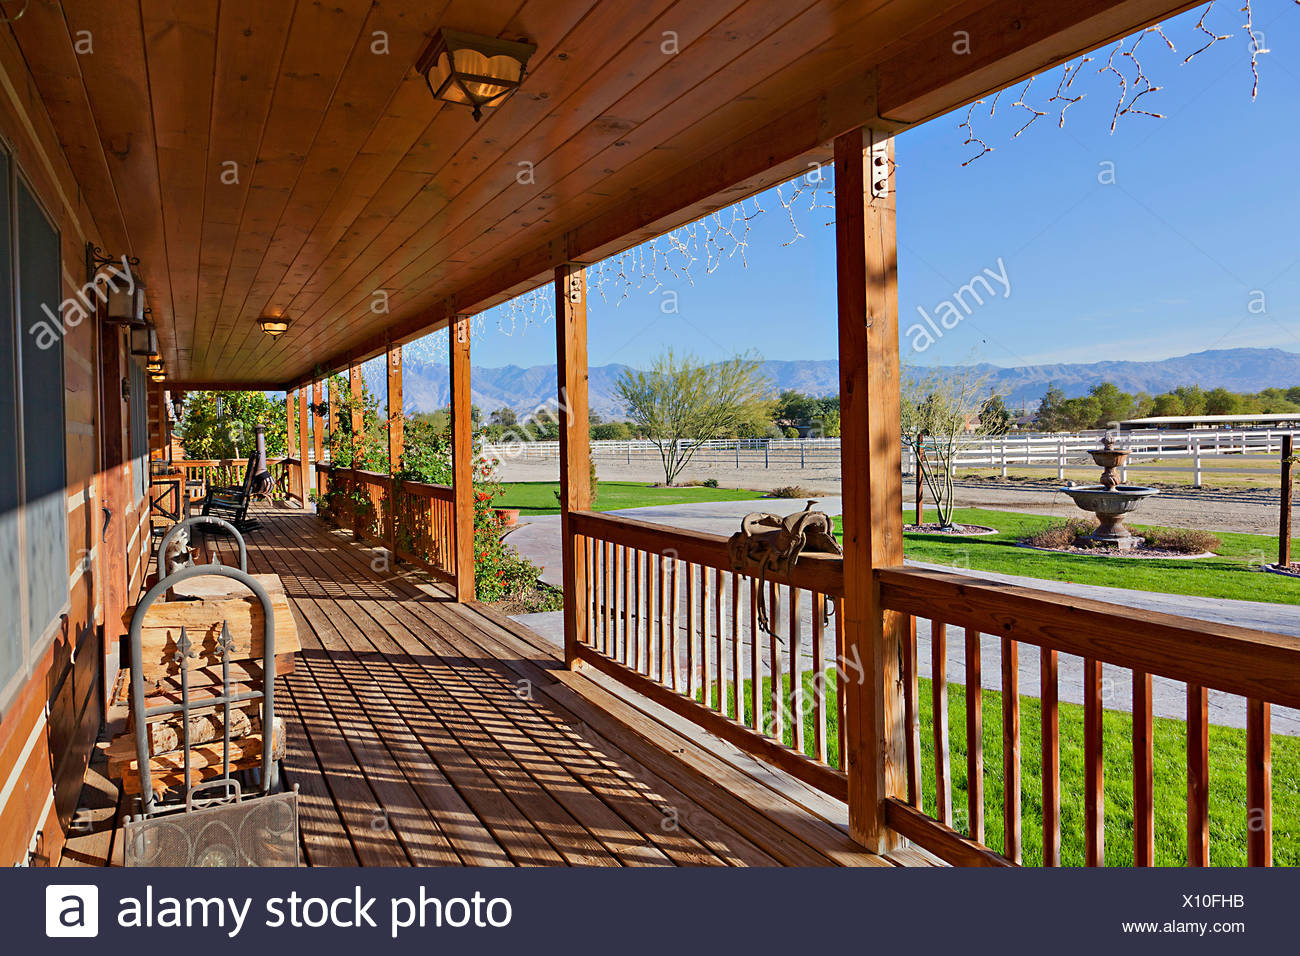 Ranch porch overlooking horse stables - Stock Image